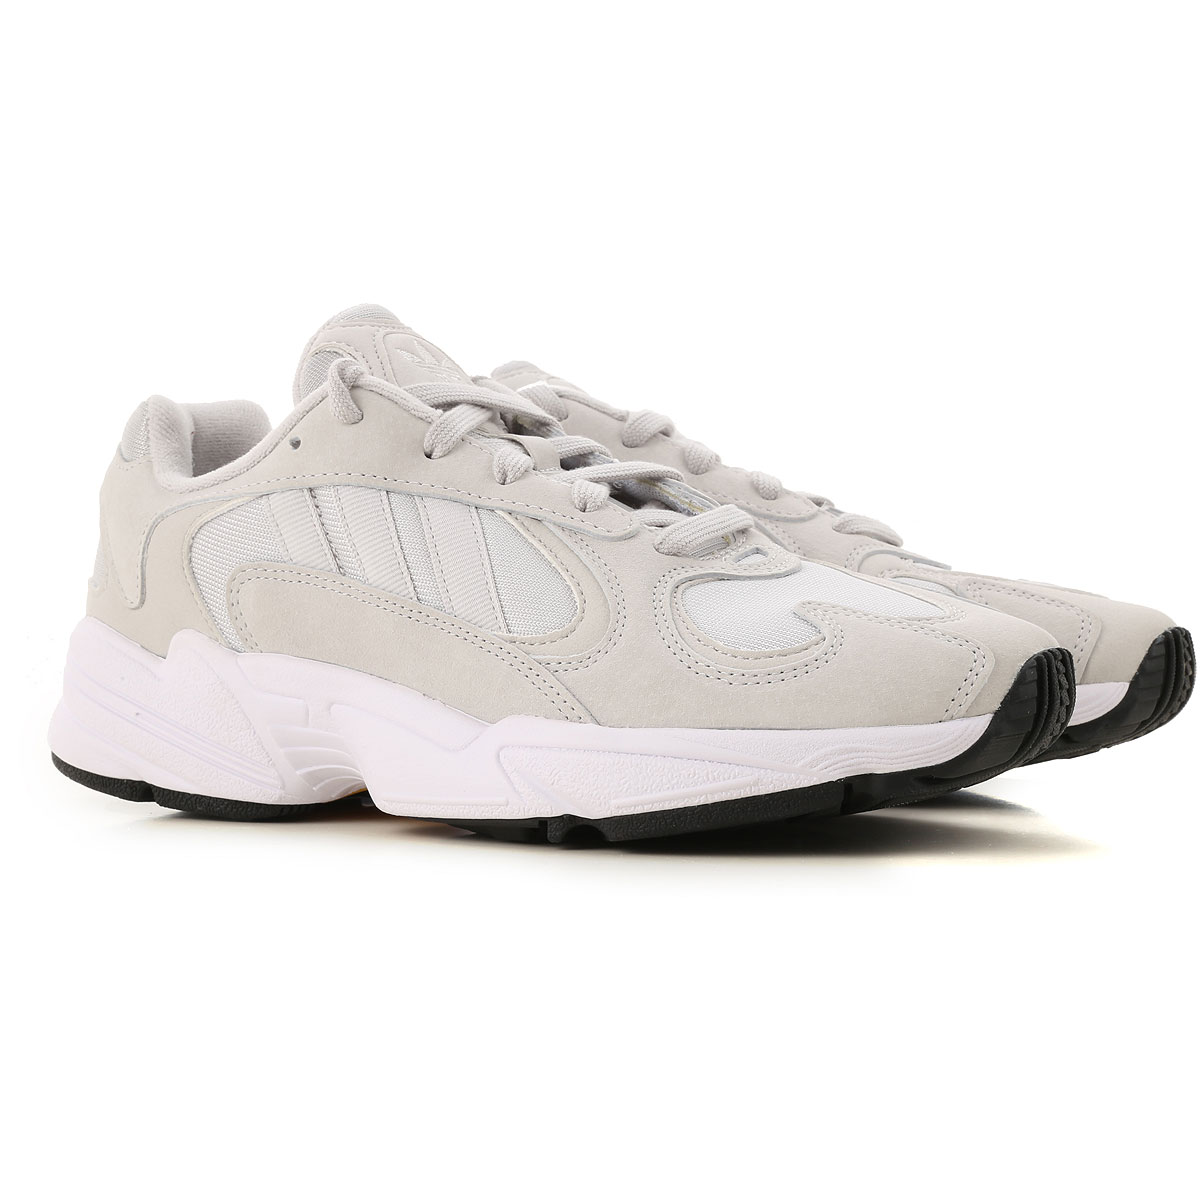 Adidas Sneakers for Men On Sale in Outlet, Light Grey, suede, 2019, US 10 - UK 9 1/2 - EU 44 US 9.5 - UK 9 - EU 43.5